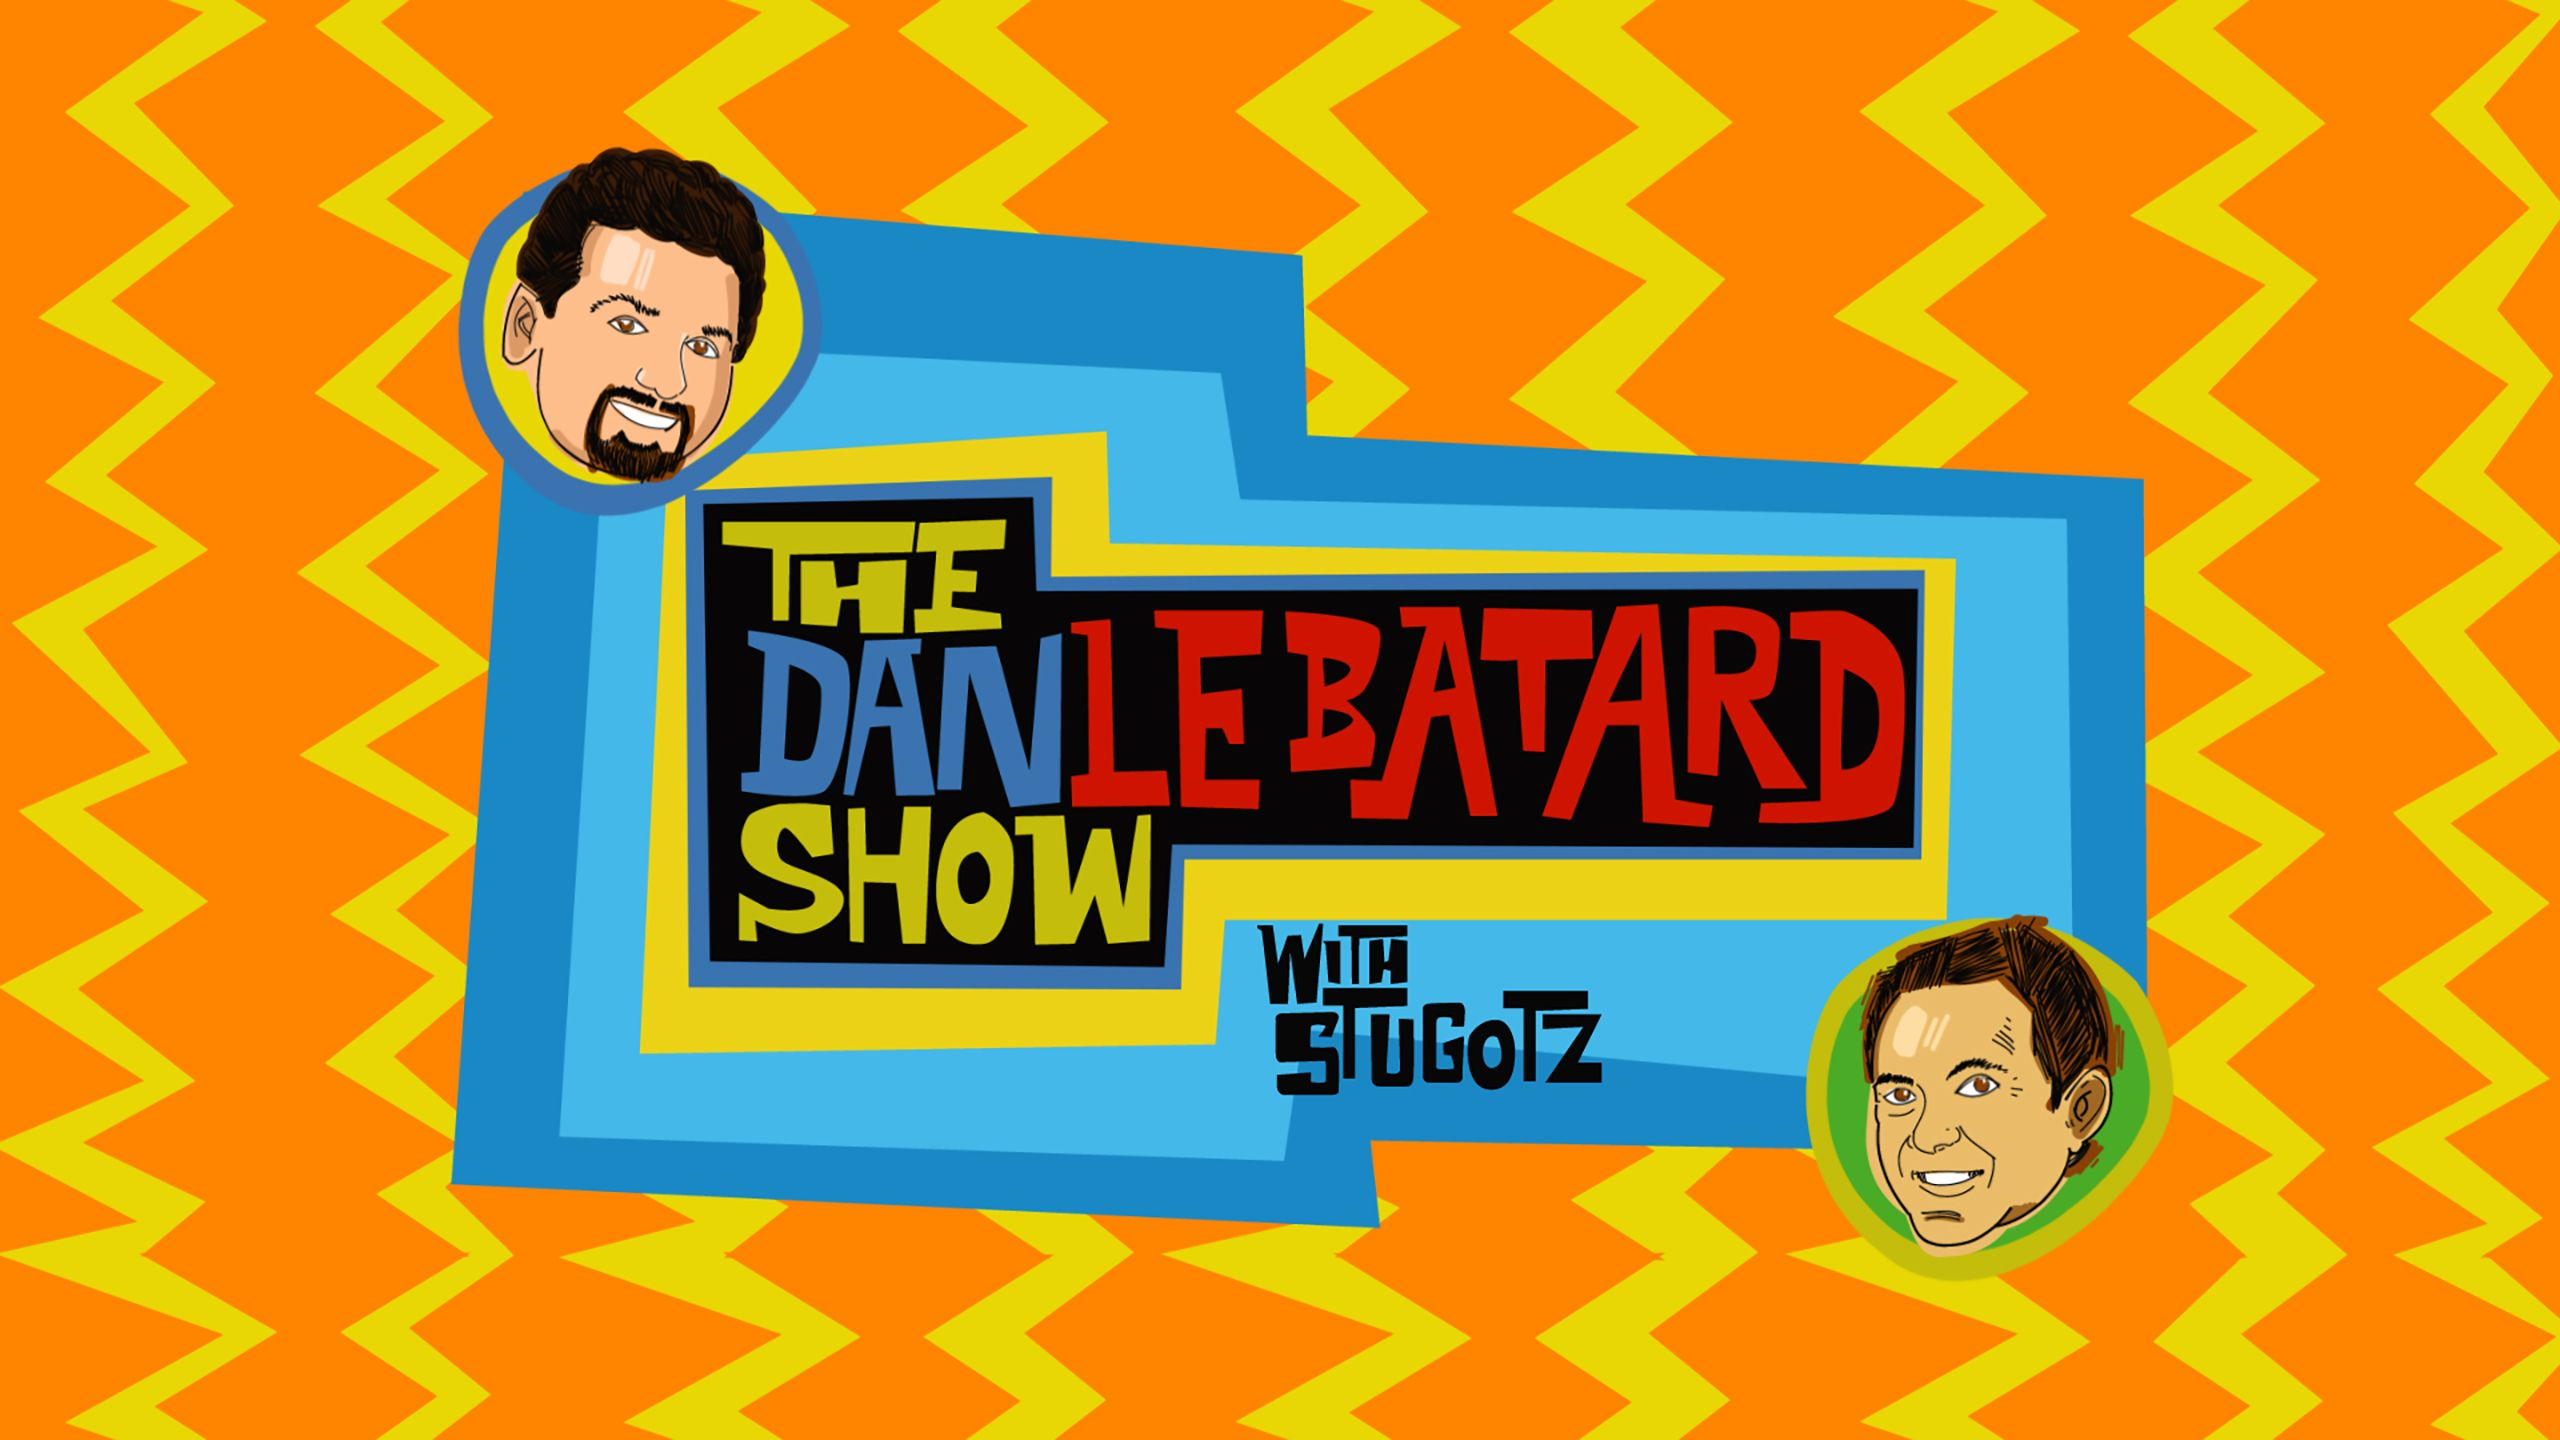 Tue, 12/12 - The Dan Le Batard Show with Stugotz Presented by Progressive